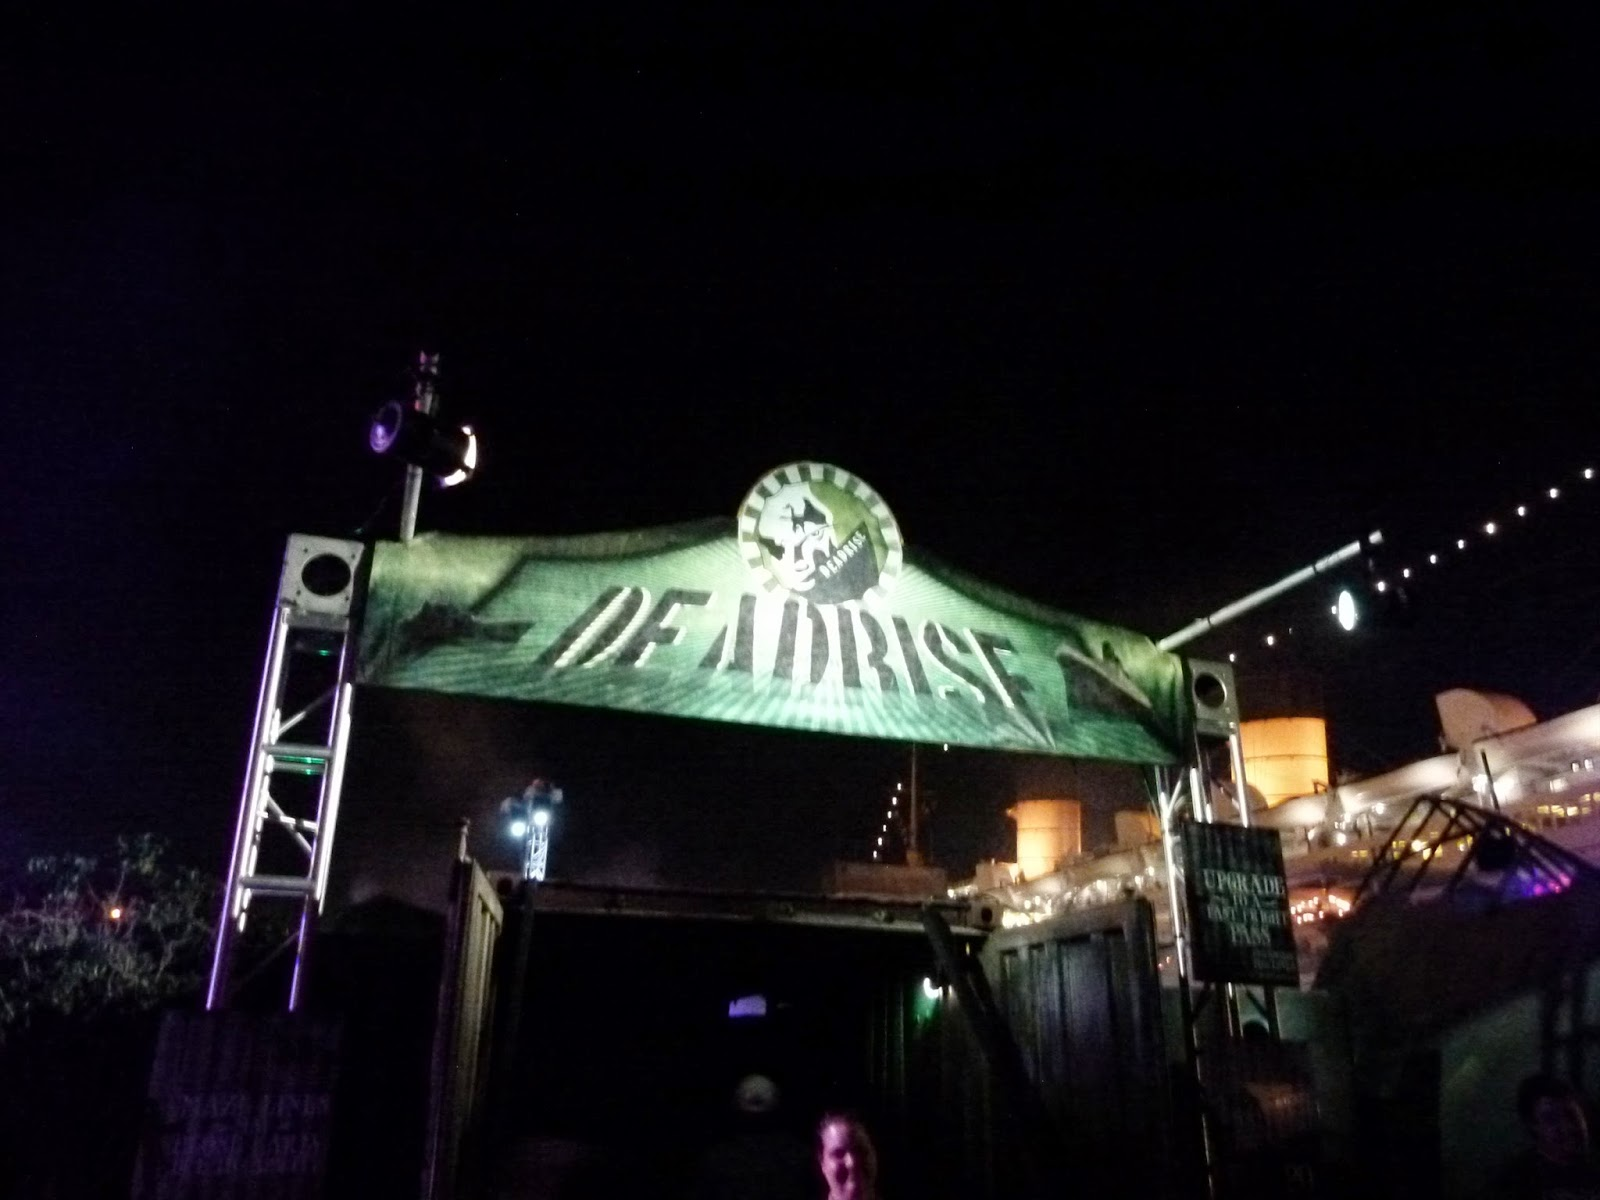 Things To Do In Los Angeles: Queen Mary's Dark Harbor 2014 Set ...